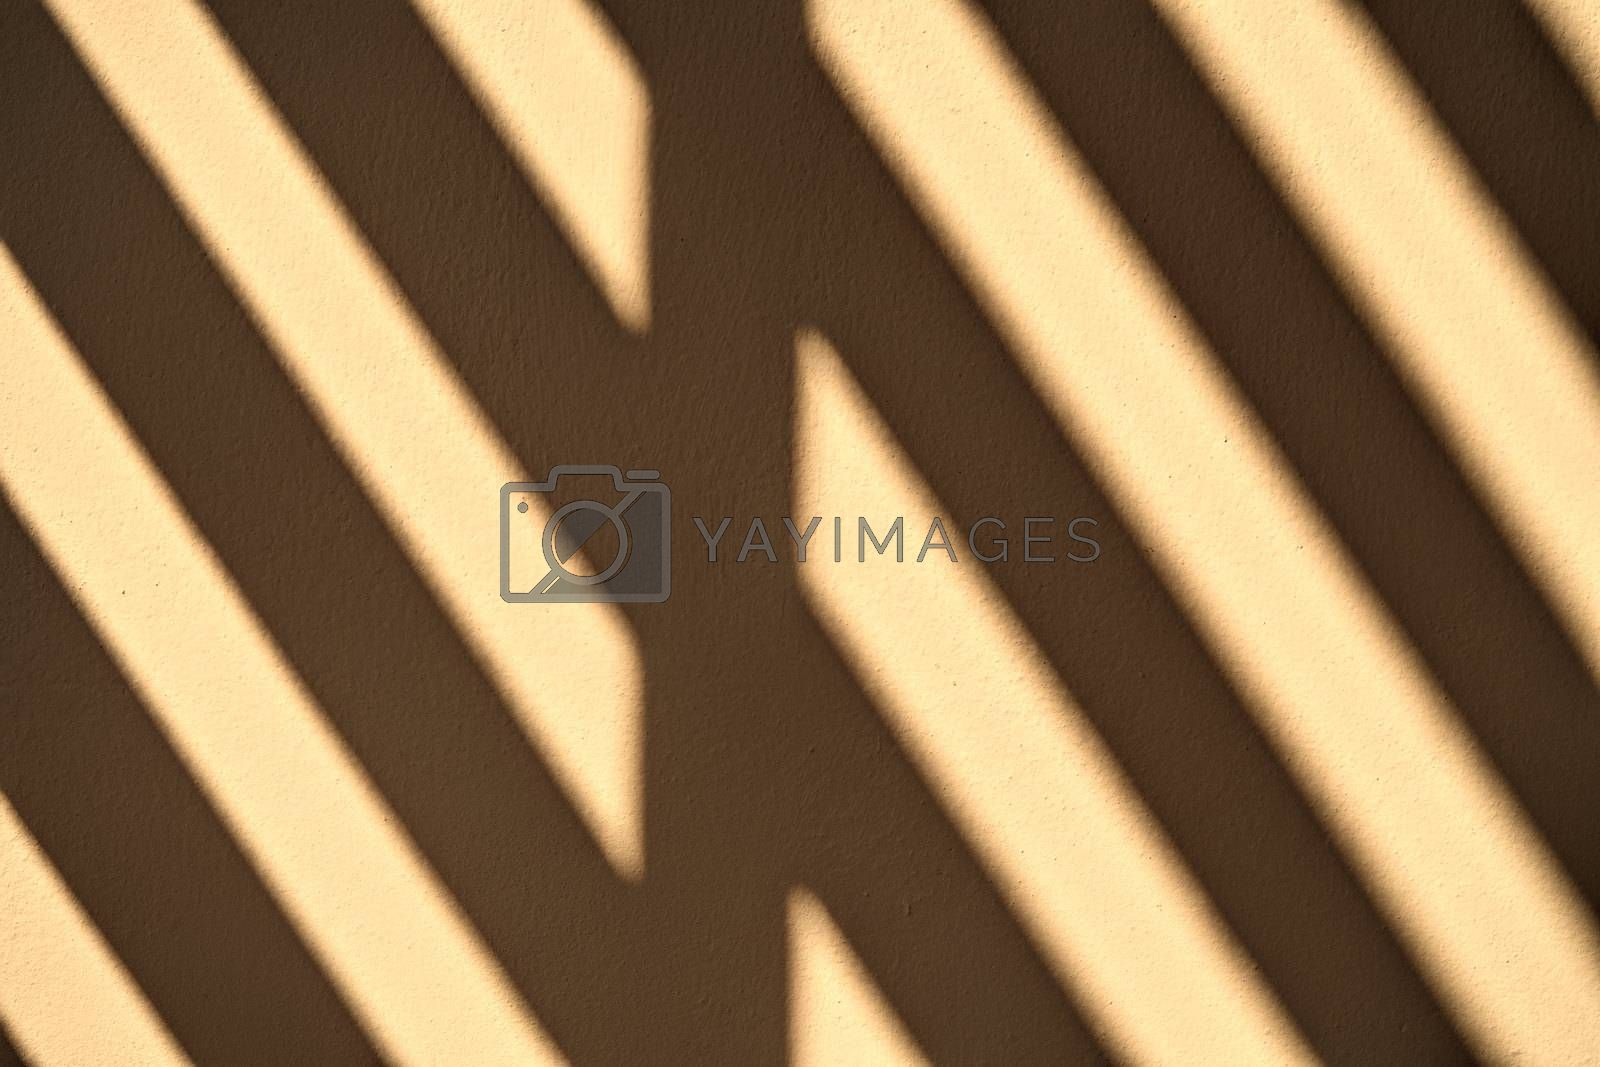 Abstract sunlight shines through the wooden channel against the cement wall.